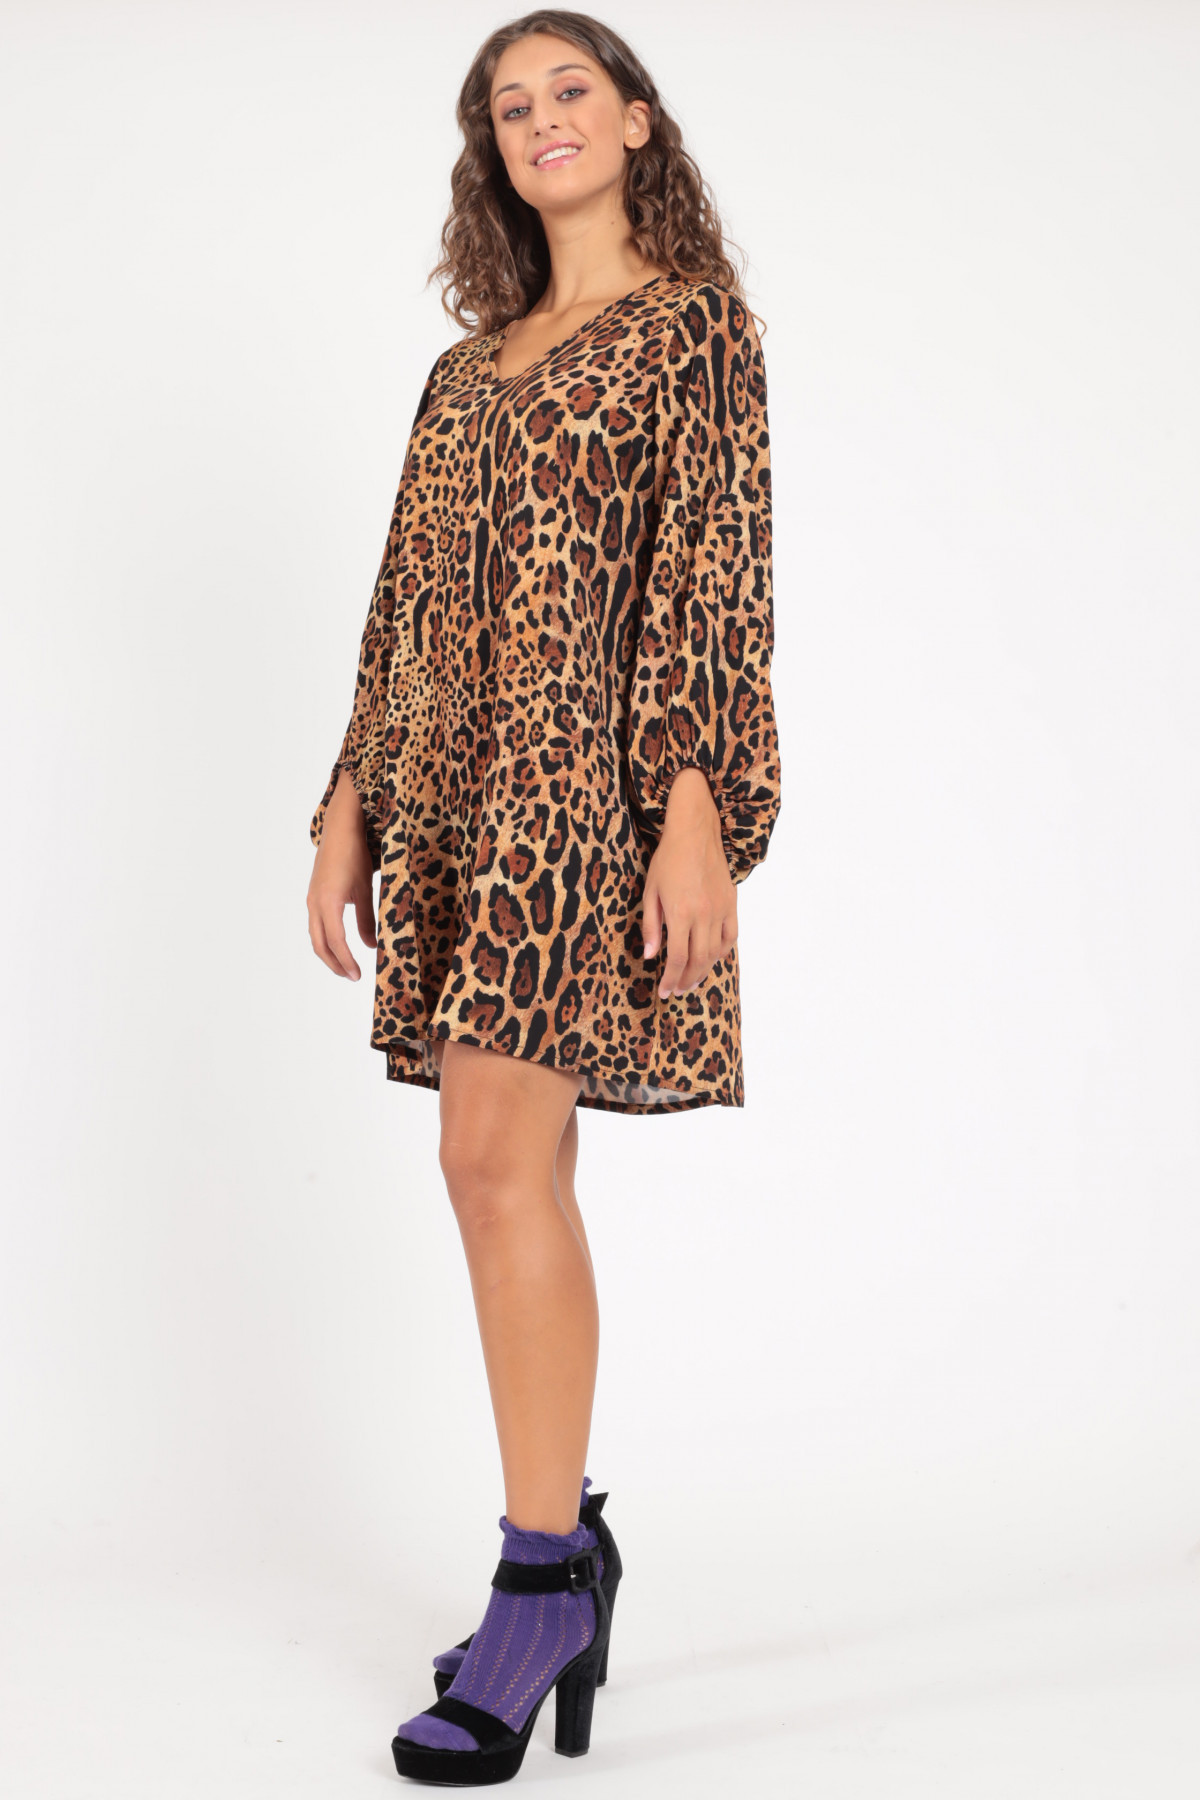 V-Neck Dress with Balloon Sleeves in Animalier Pattern